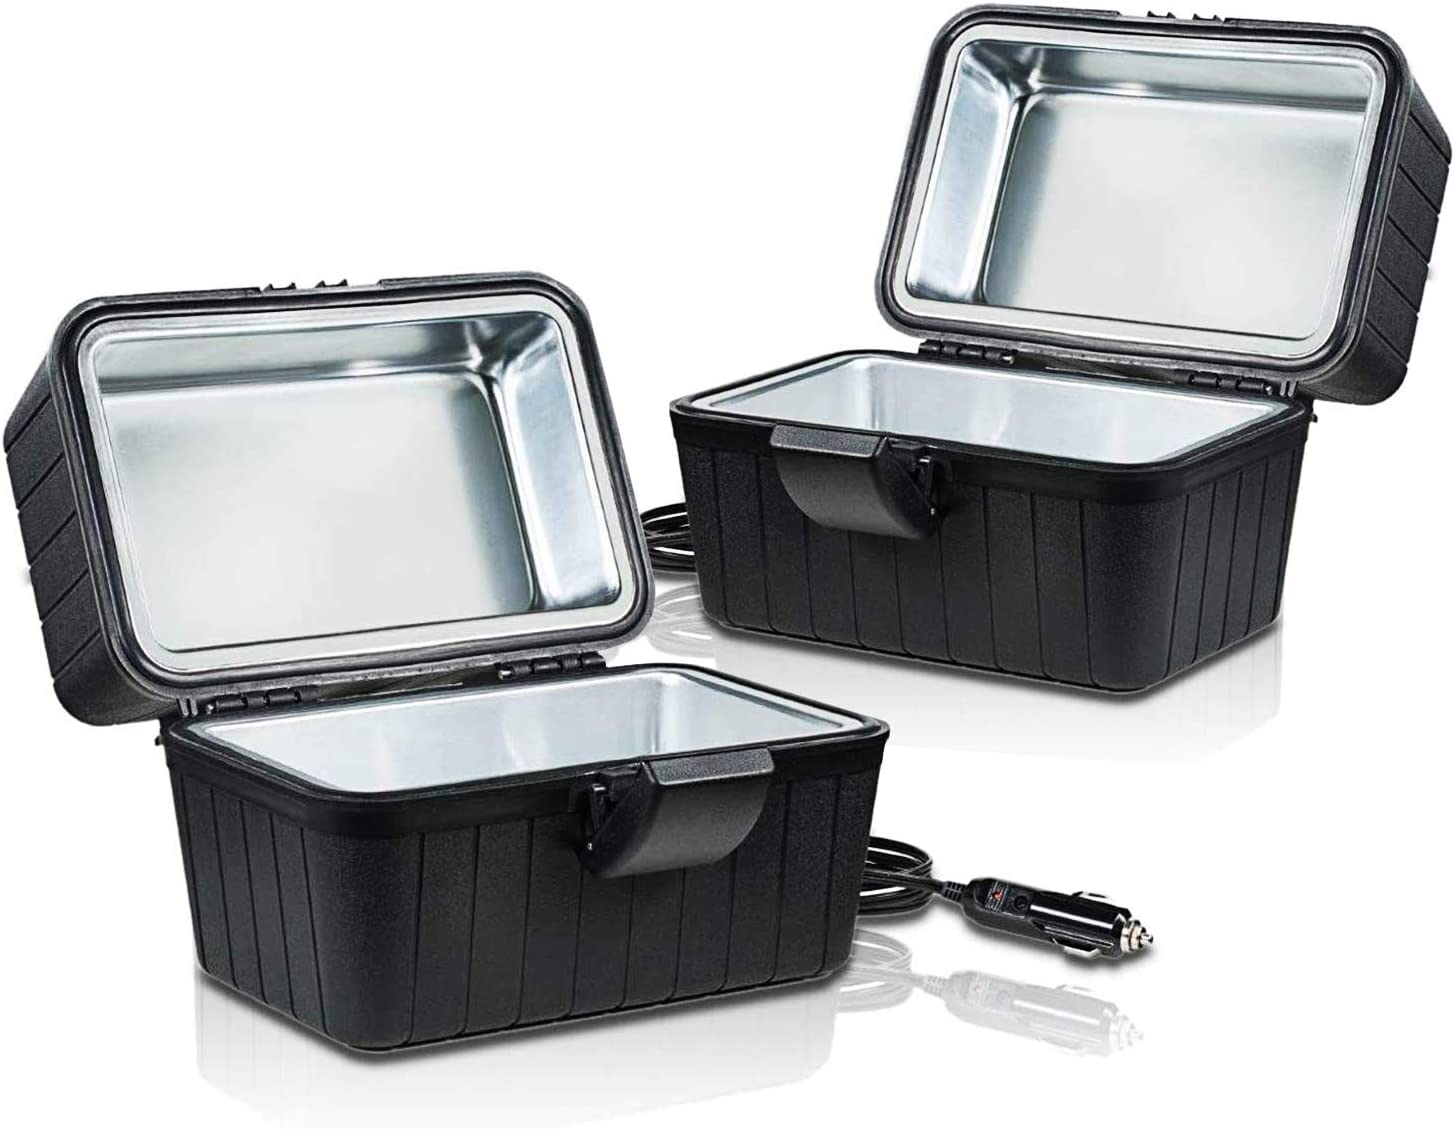 Zone Tech Heating Lunch Box - Premium Quality 2 Pack Electric Insulated Lunch Box Food Warmer Perfect for Picnics, Travelling, and On-site Lunch Break